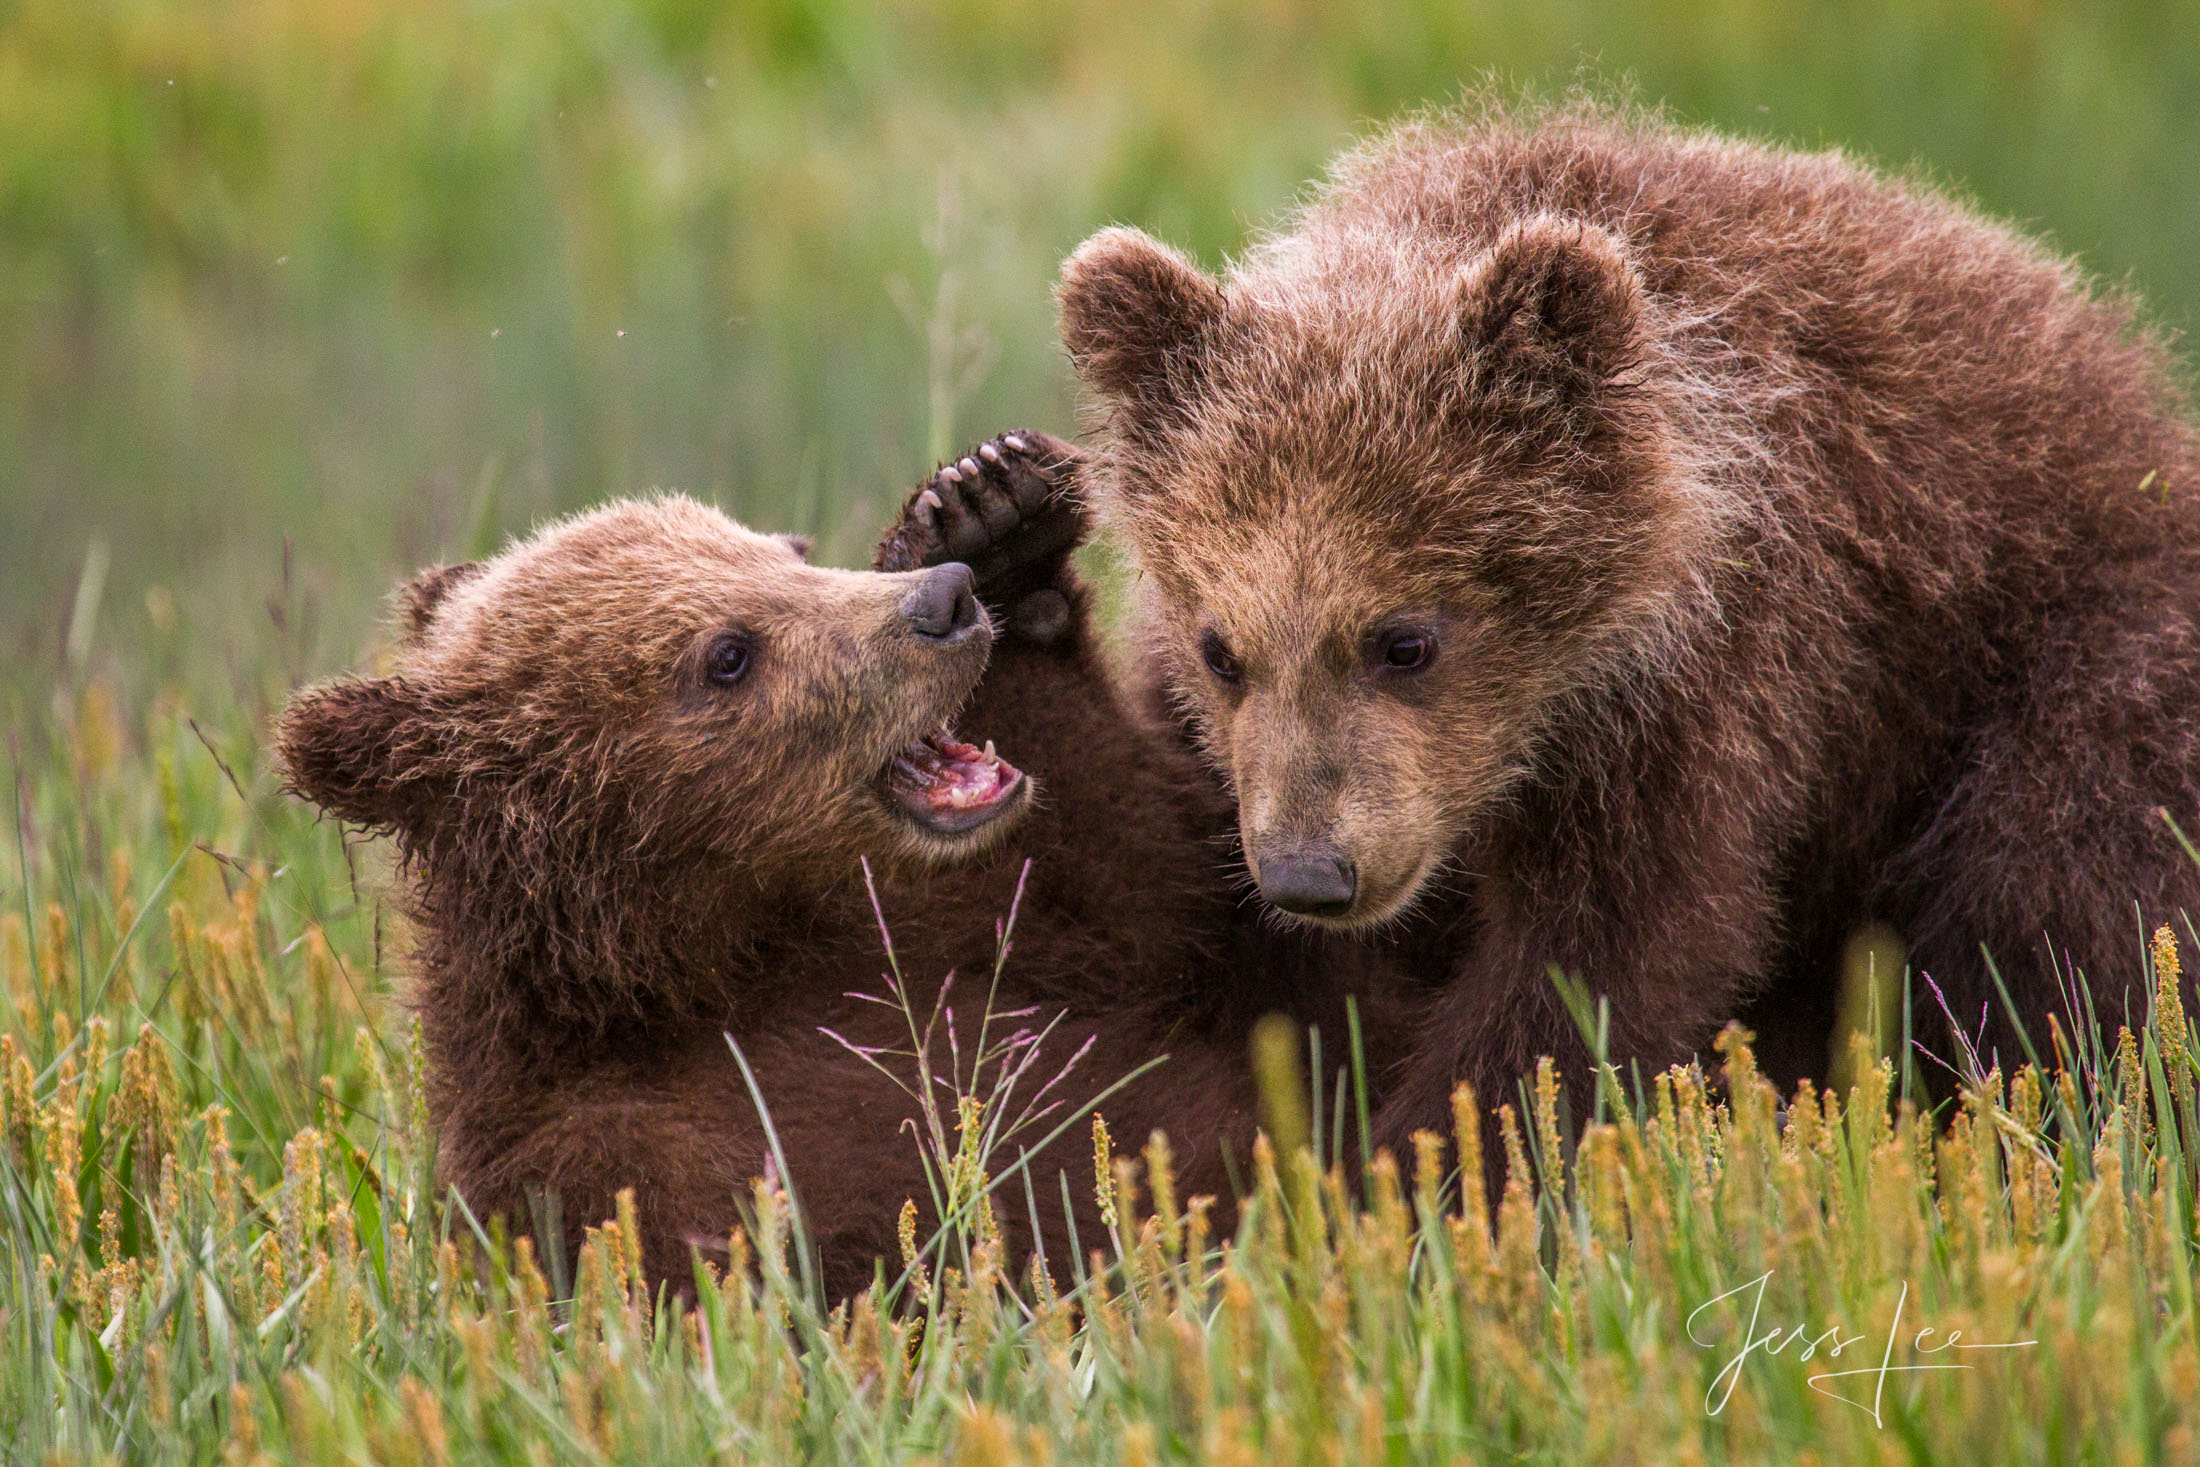 Grizzly, alaska, bear, brown, brown bear, coastal, lake clark, national park, Alaska*, bear*, brown bear*, brown bears*, brown*, coastal*, cubs*, grizzlies*, Grizzly*, Jess Lee*, Cooke inlet, legendar, photo